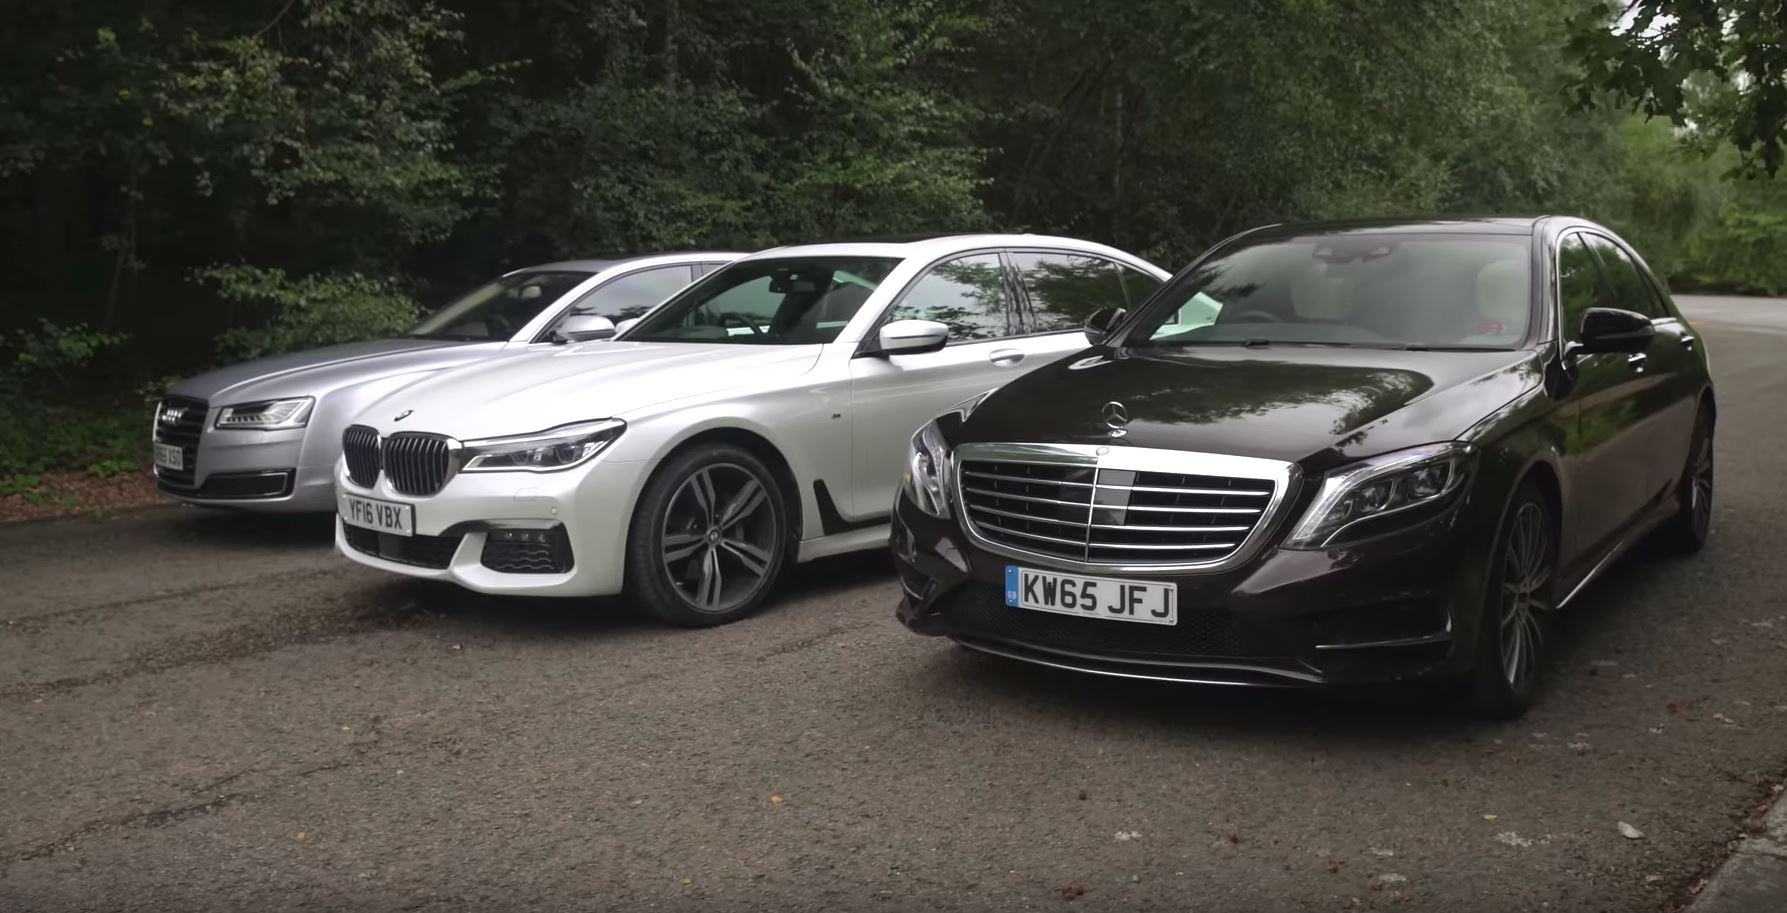 VIDEO: F90 BMW M5 vs Mercedes-AMG E63 S — Speed and Noise